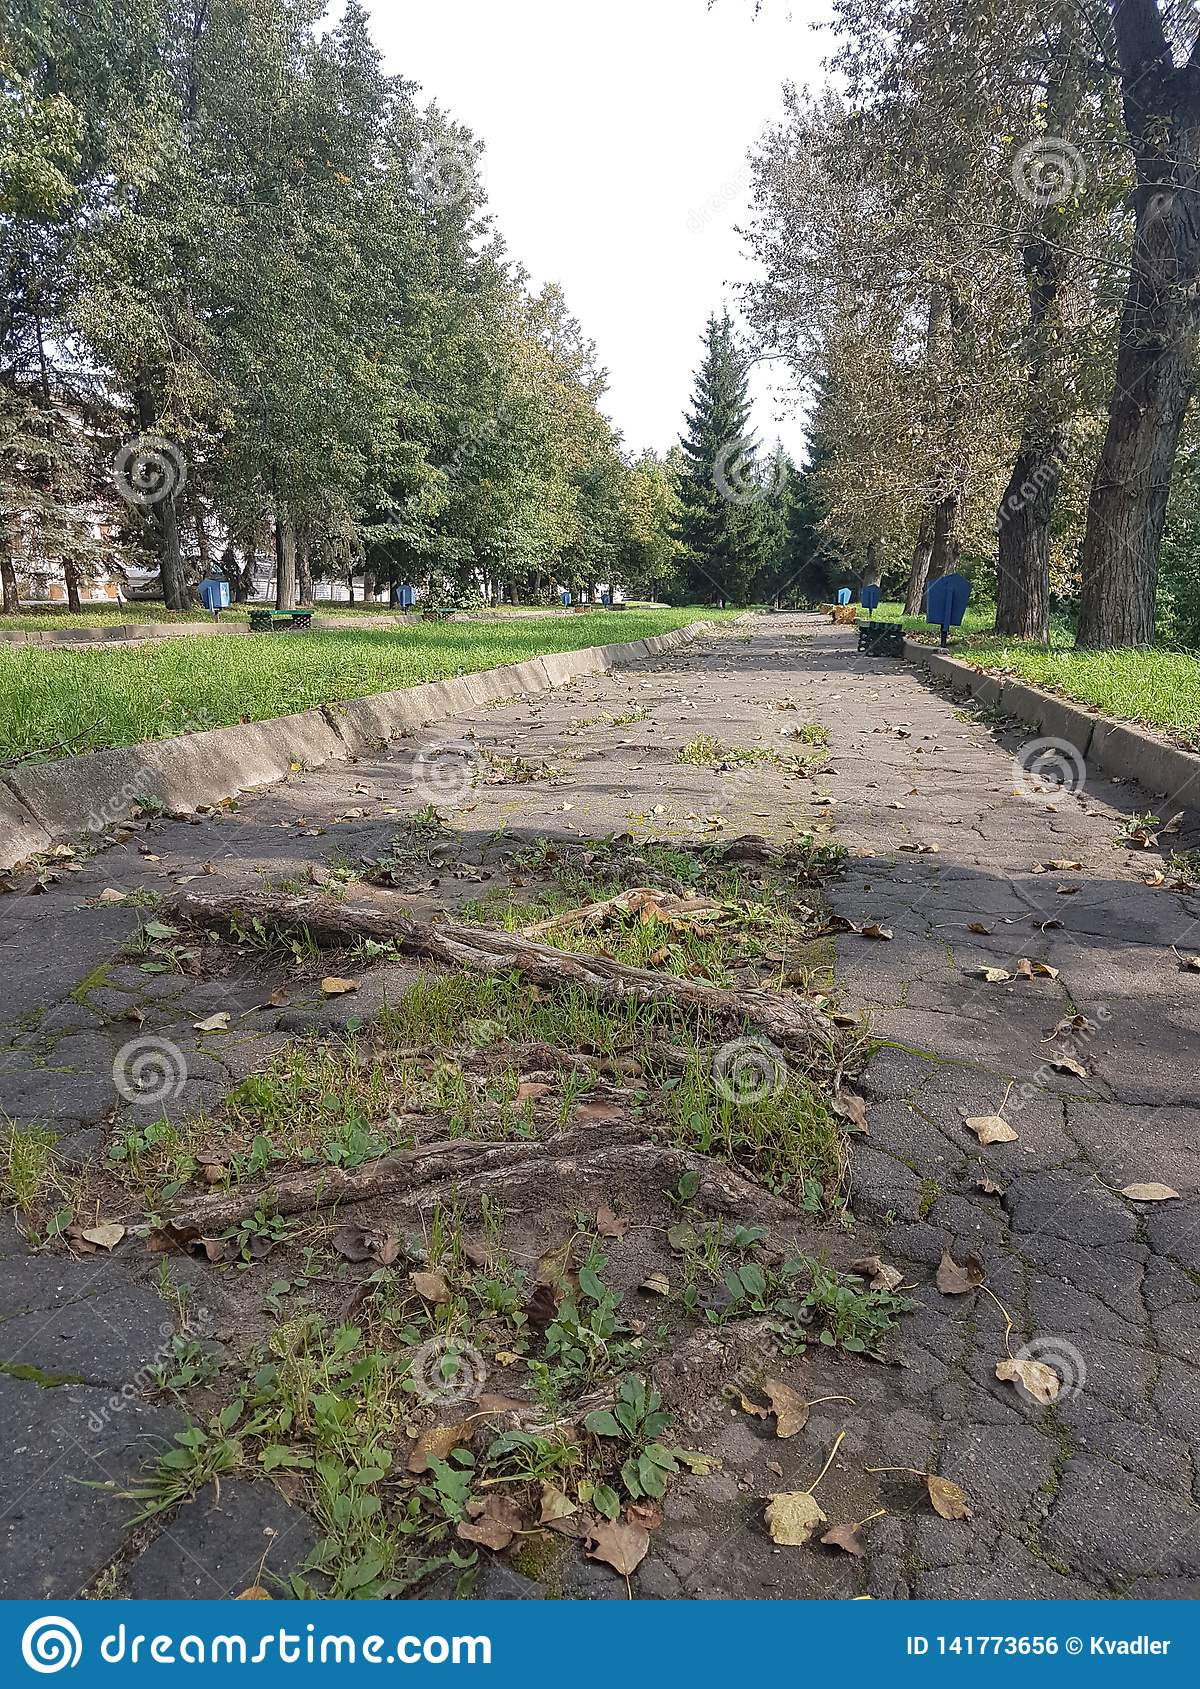 The pits and potholes on a rural road after rain in summer among the green trees, Russia